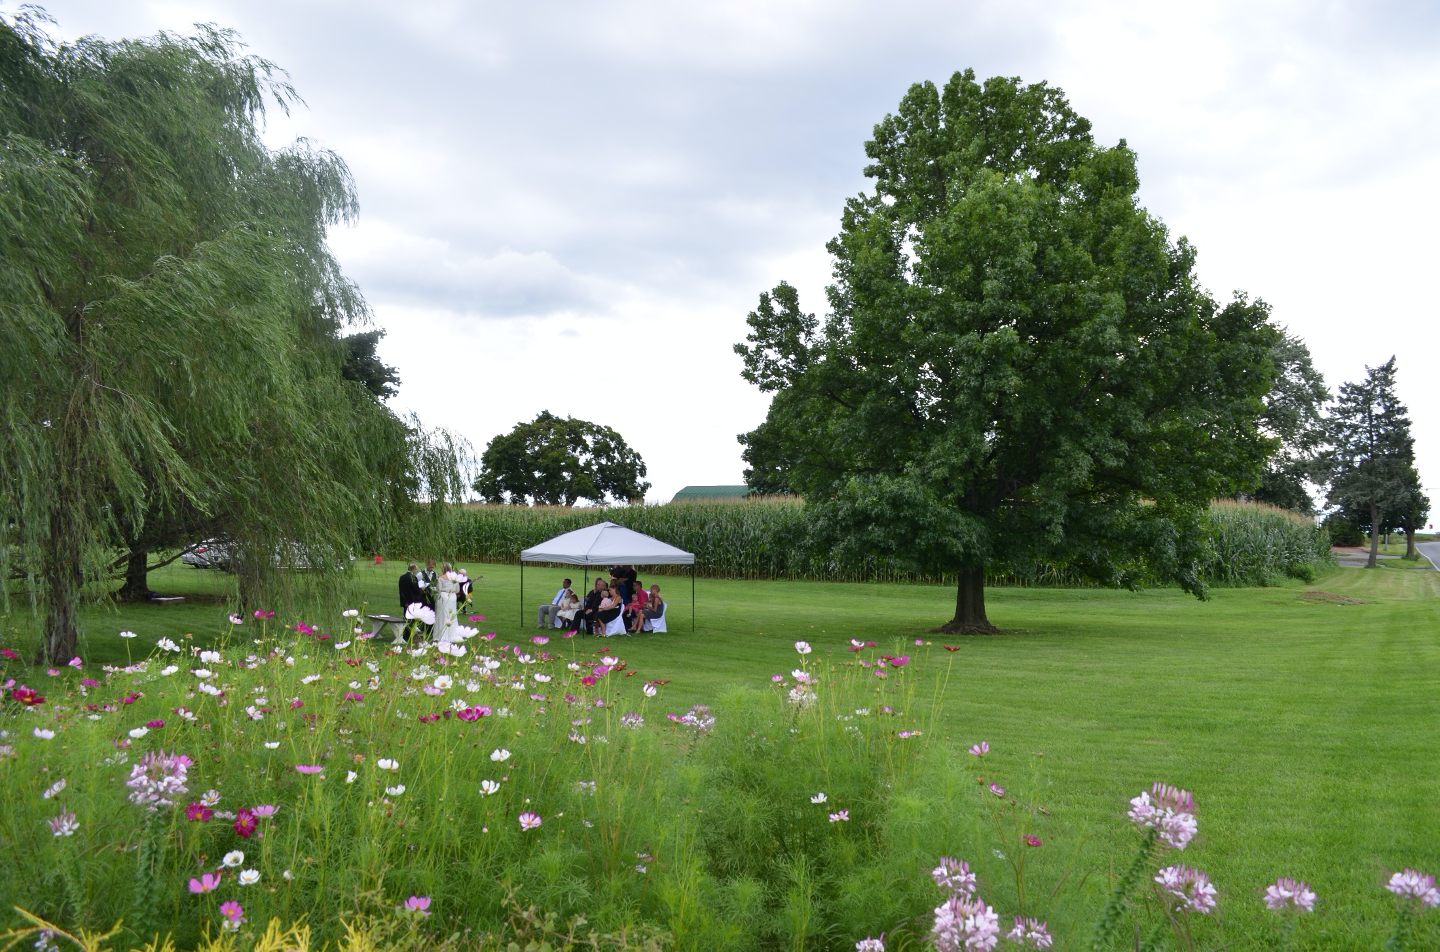 Outdoor wedding with beautiful green lawn, cornfield in background, colorful flowers from garden in foreground